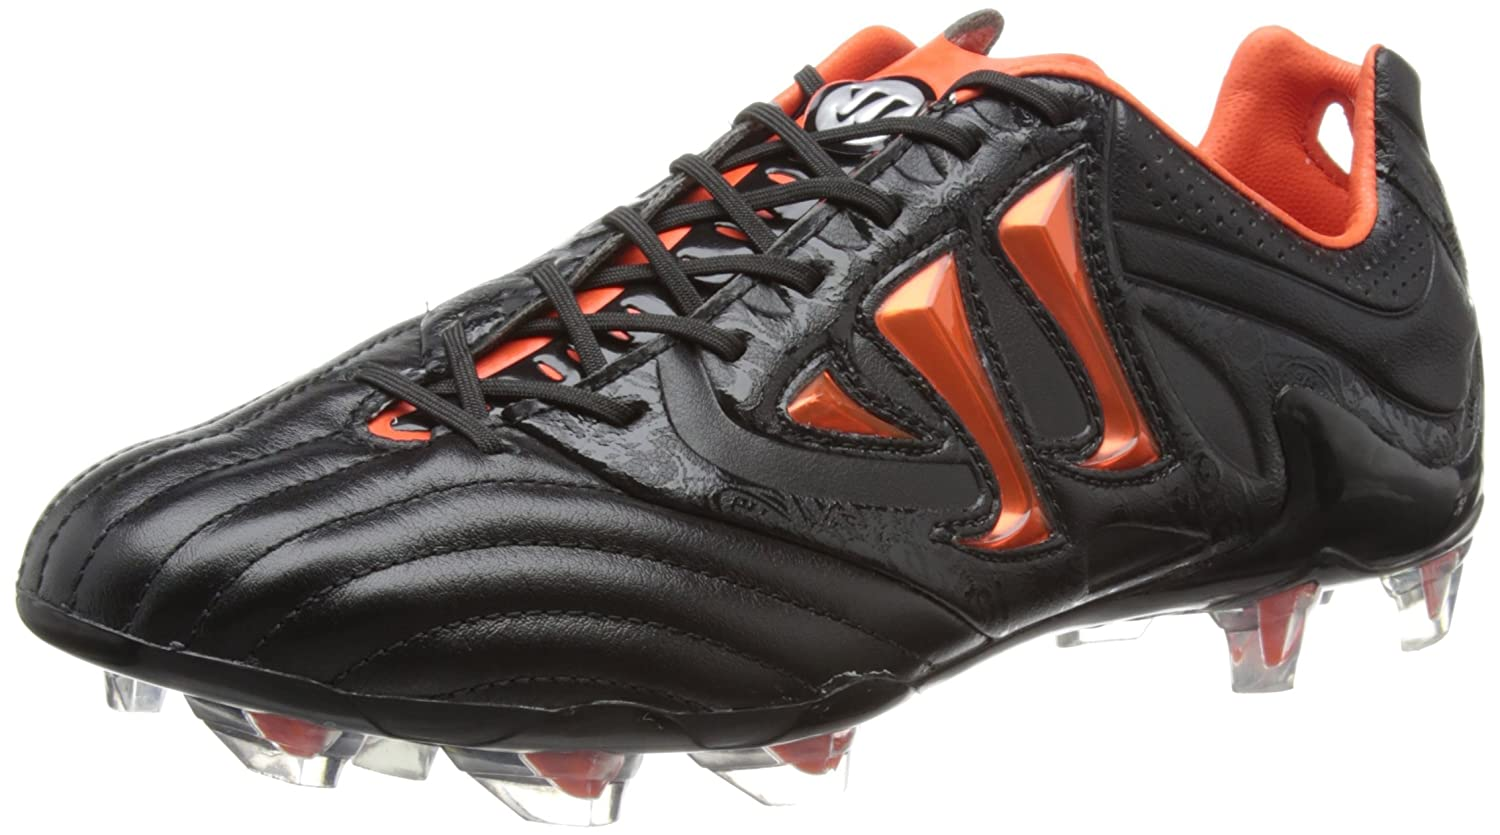 Warrior Skreamer Pro K-Leder Firm Ground, Herren Fußballschuhe